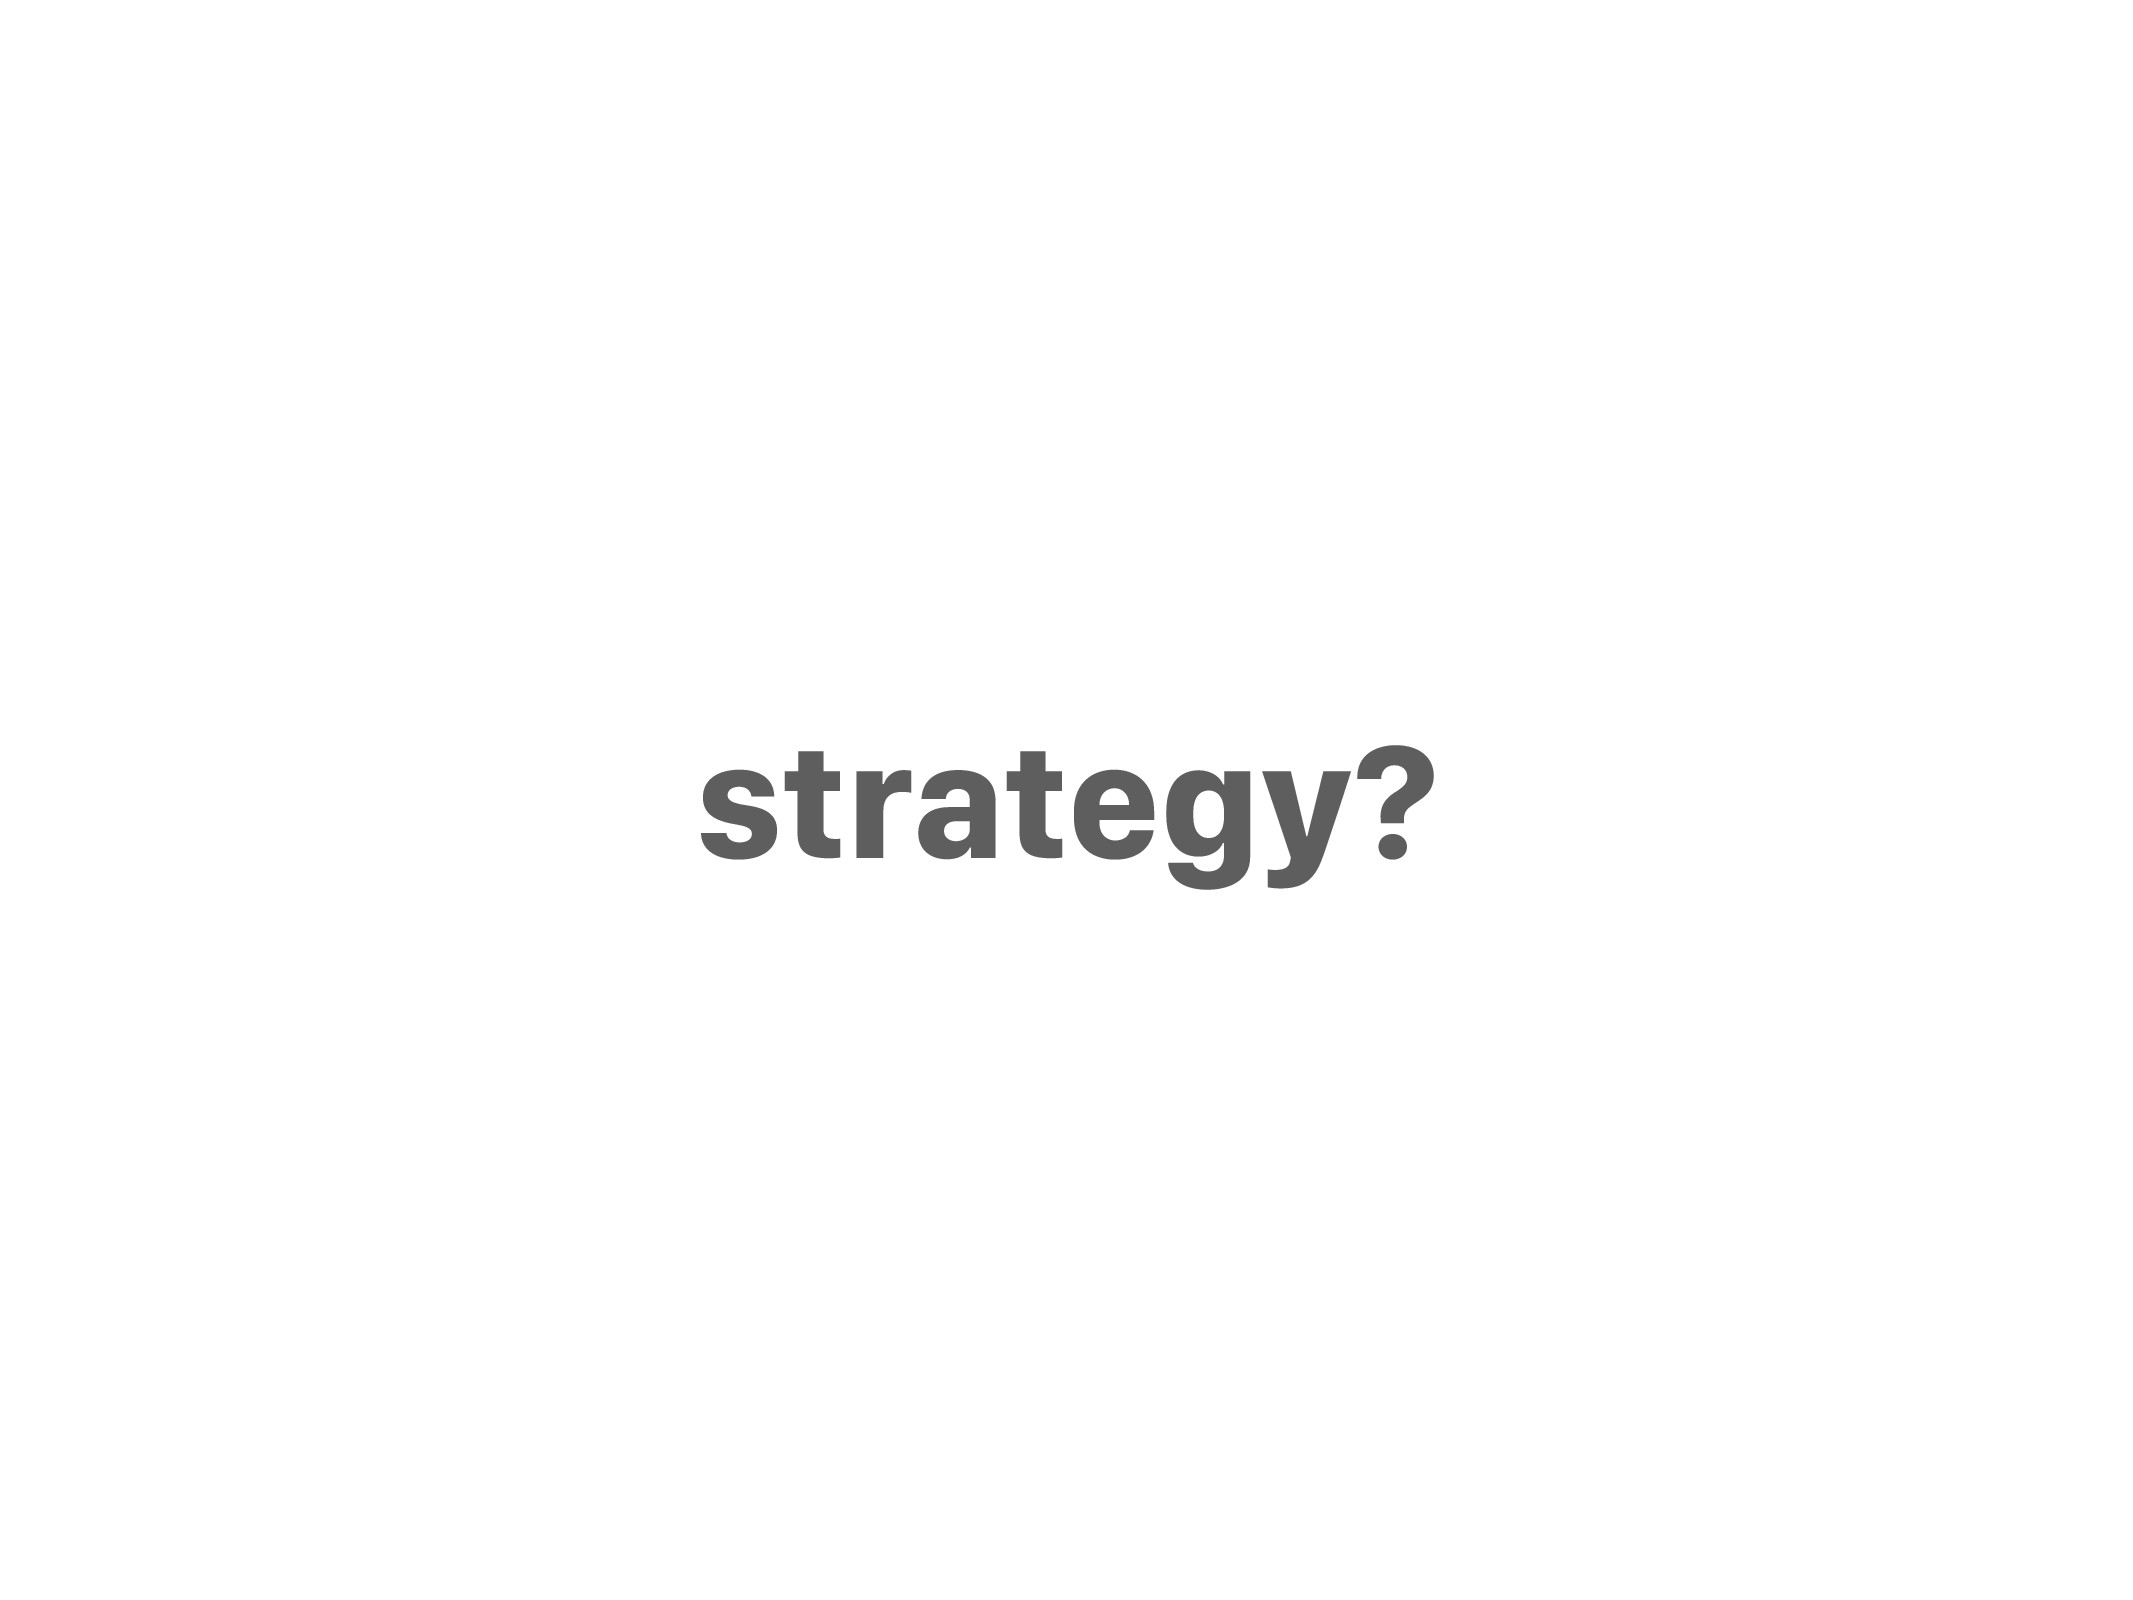 strategy?